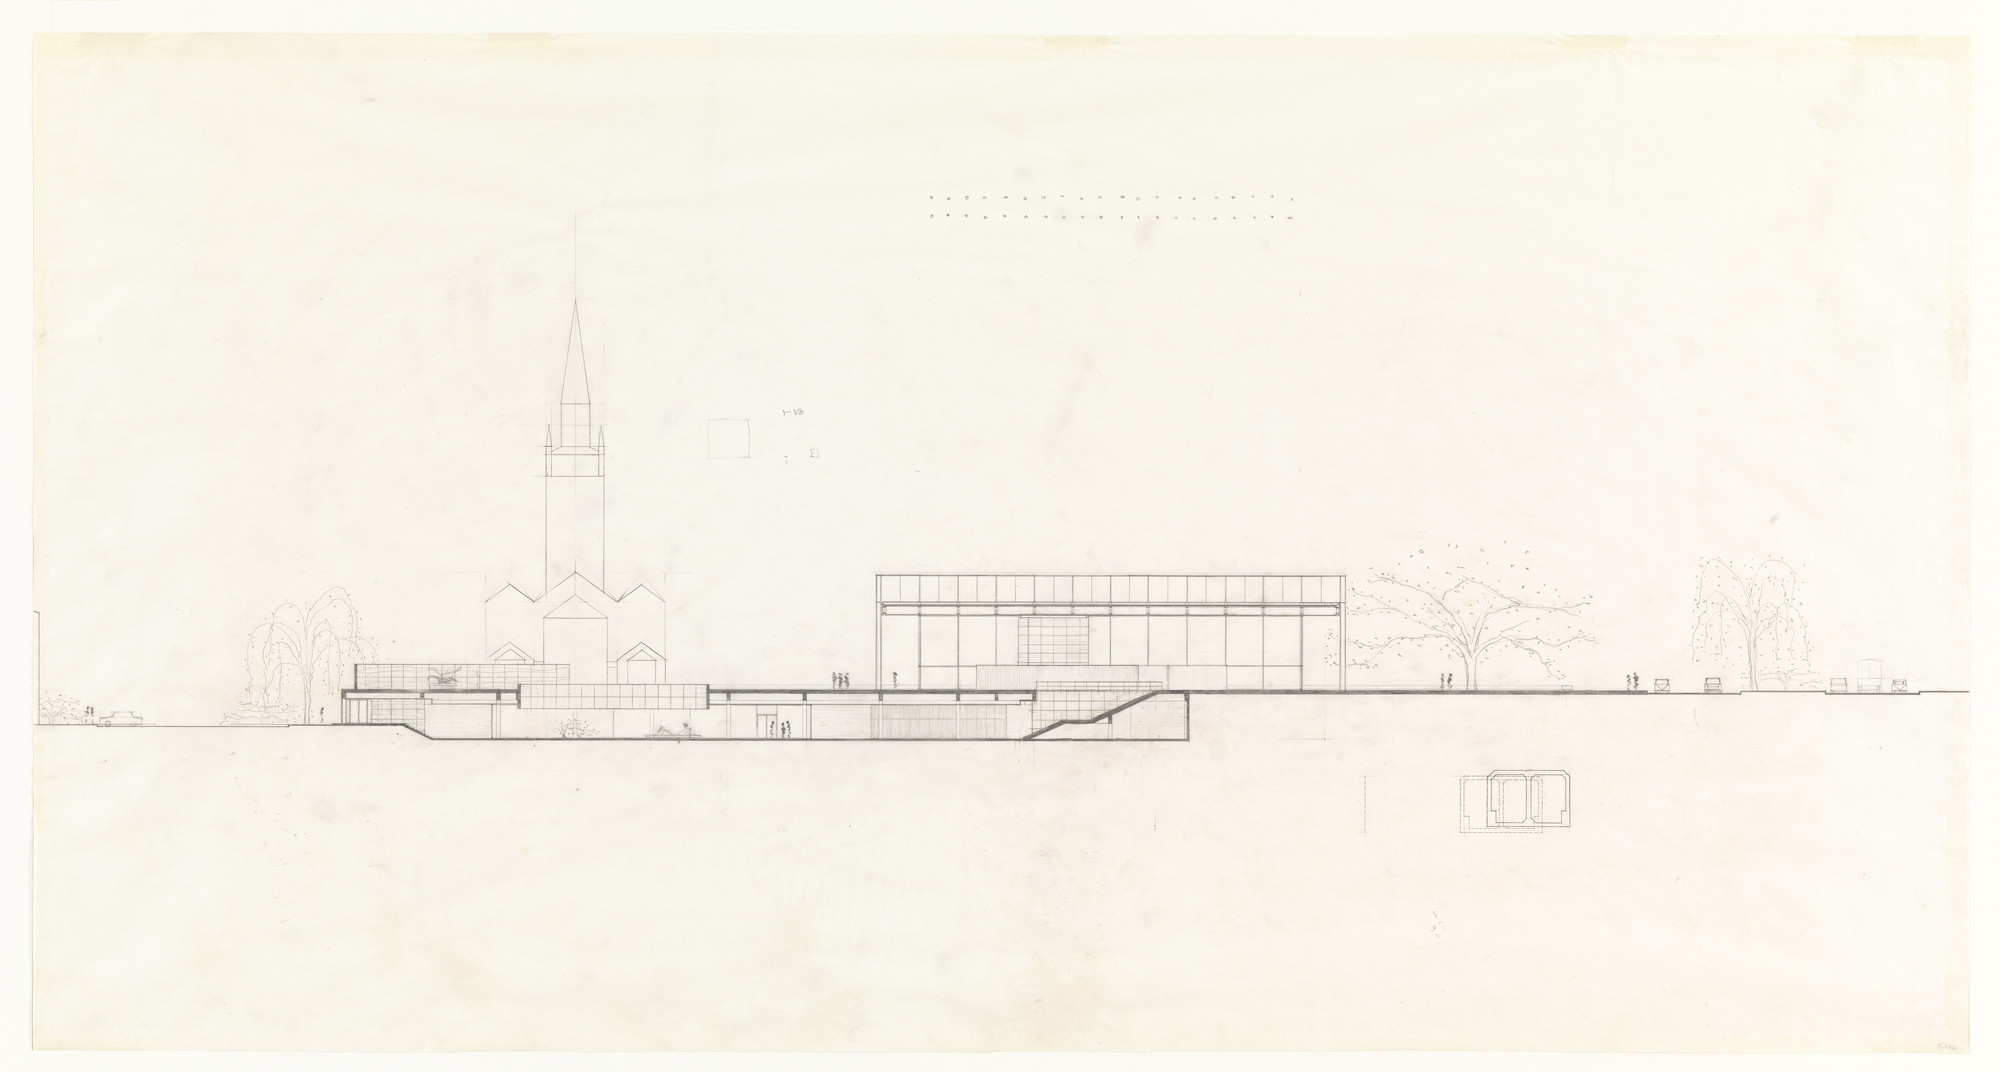 Ludwig Mies van der Rohe. New National Gallery, Berlin, Germany. c.1962-1968